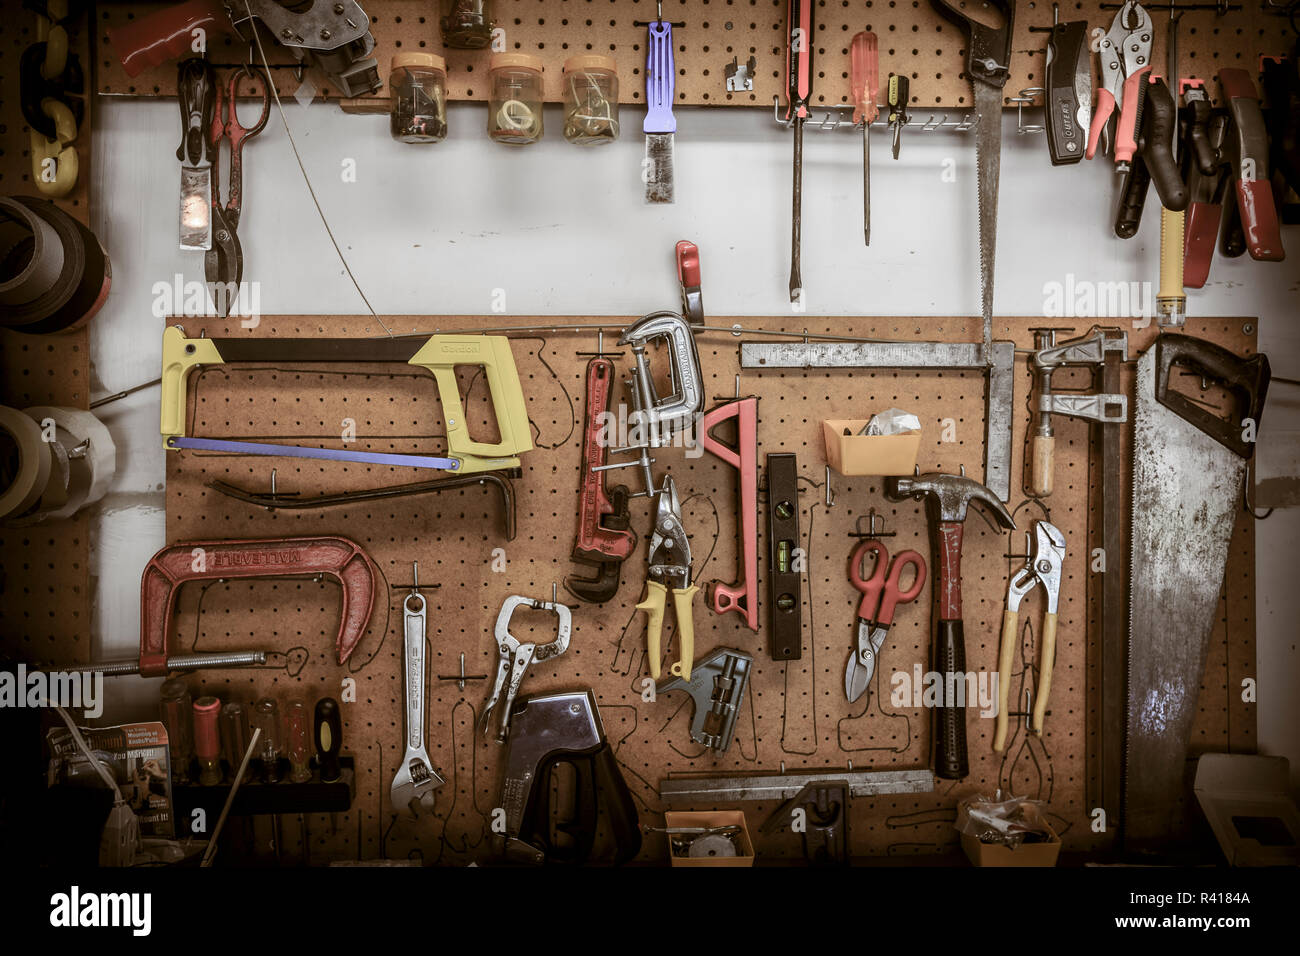 Tools hanging at a home workbench. - Stock Image